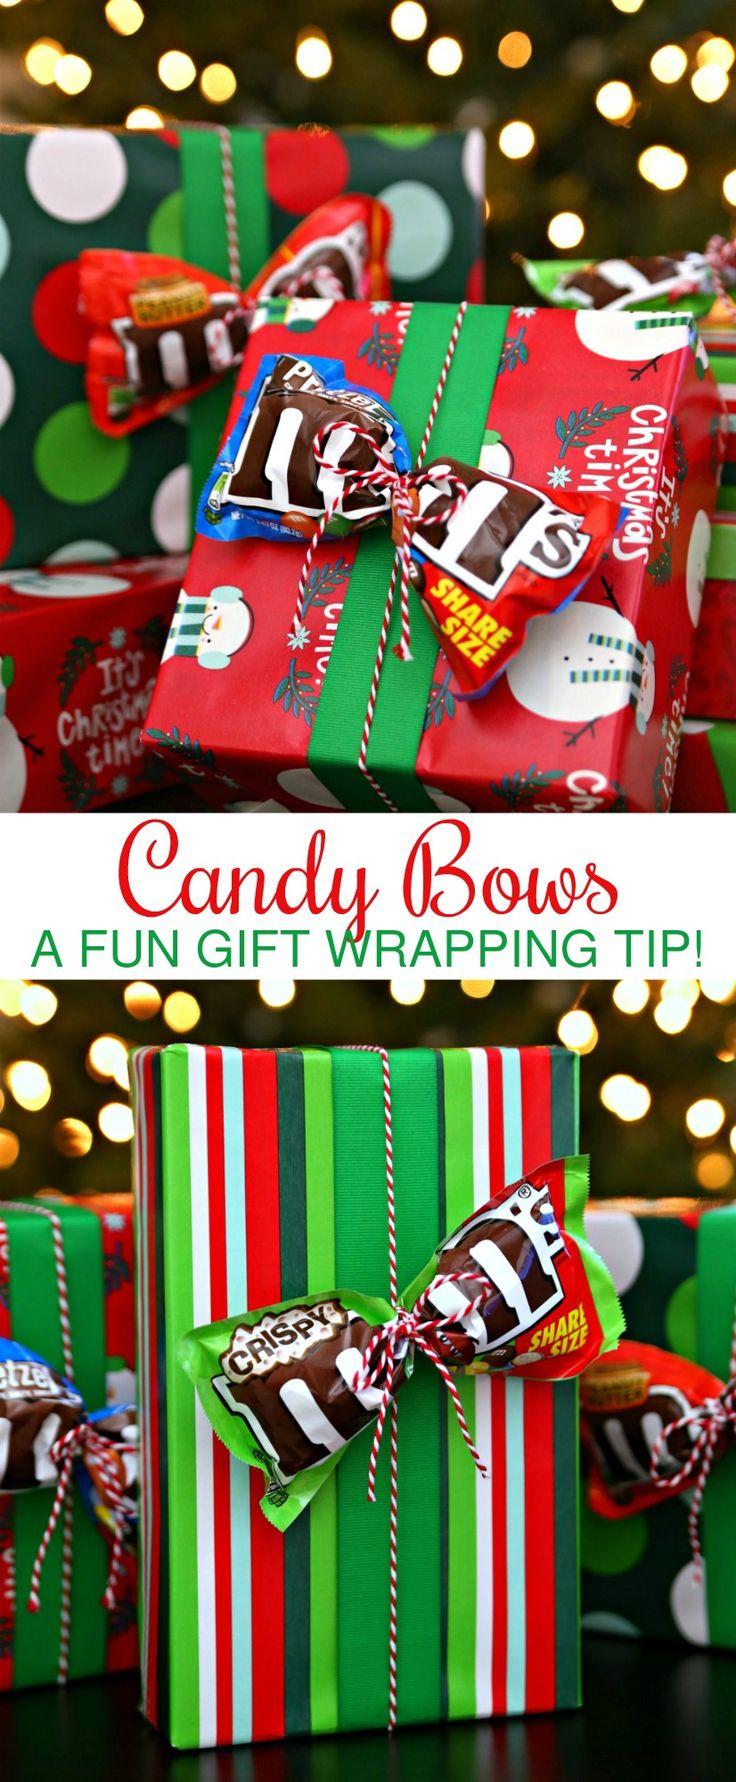 Add Candy Bows to all your holiday gifts! #WishListBBxx  #ad